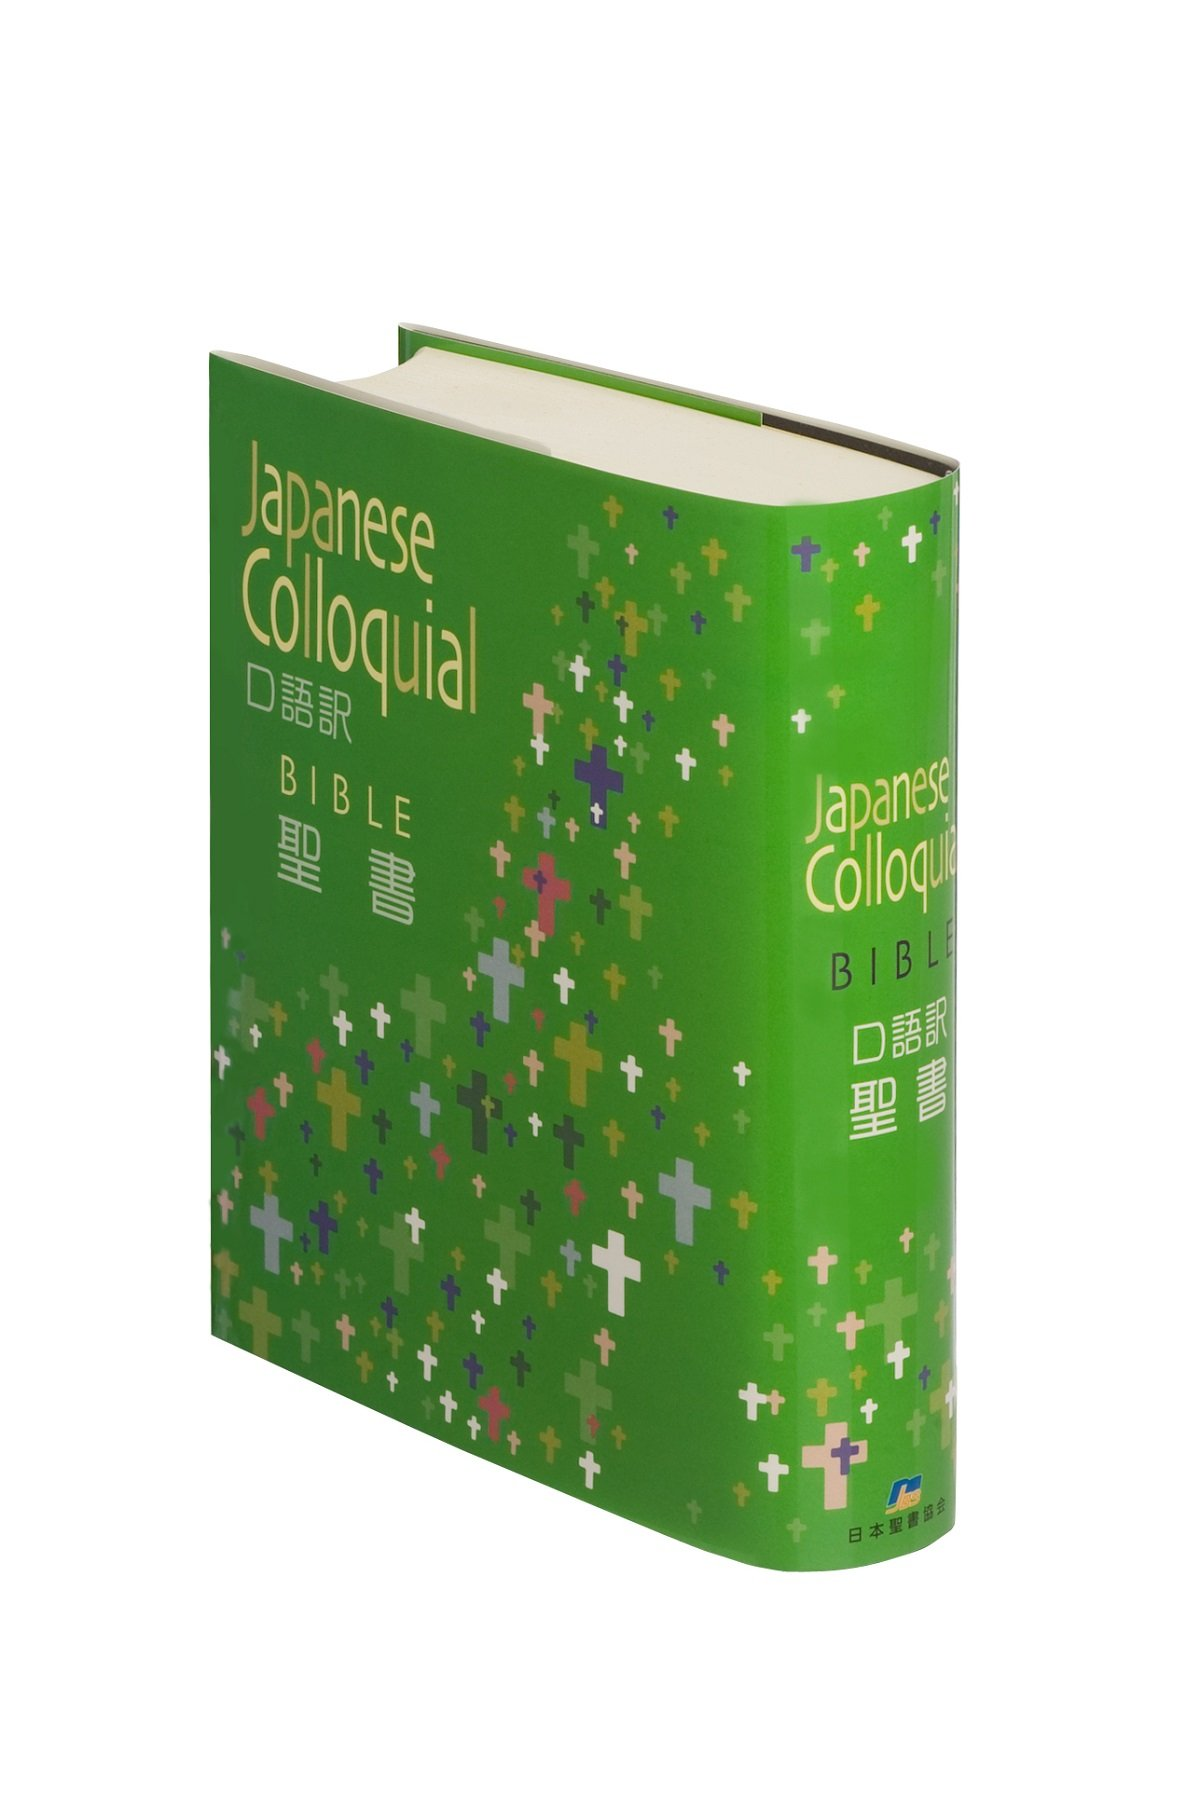 Read Online Japanese Bible Colloquial Version (Japanese Edition) ebook